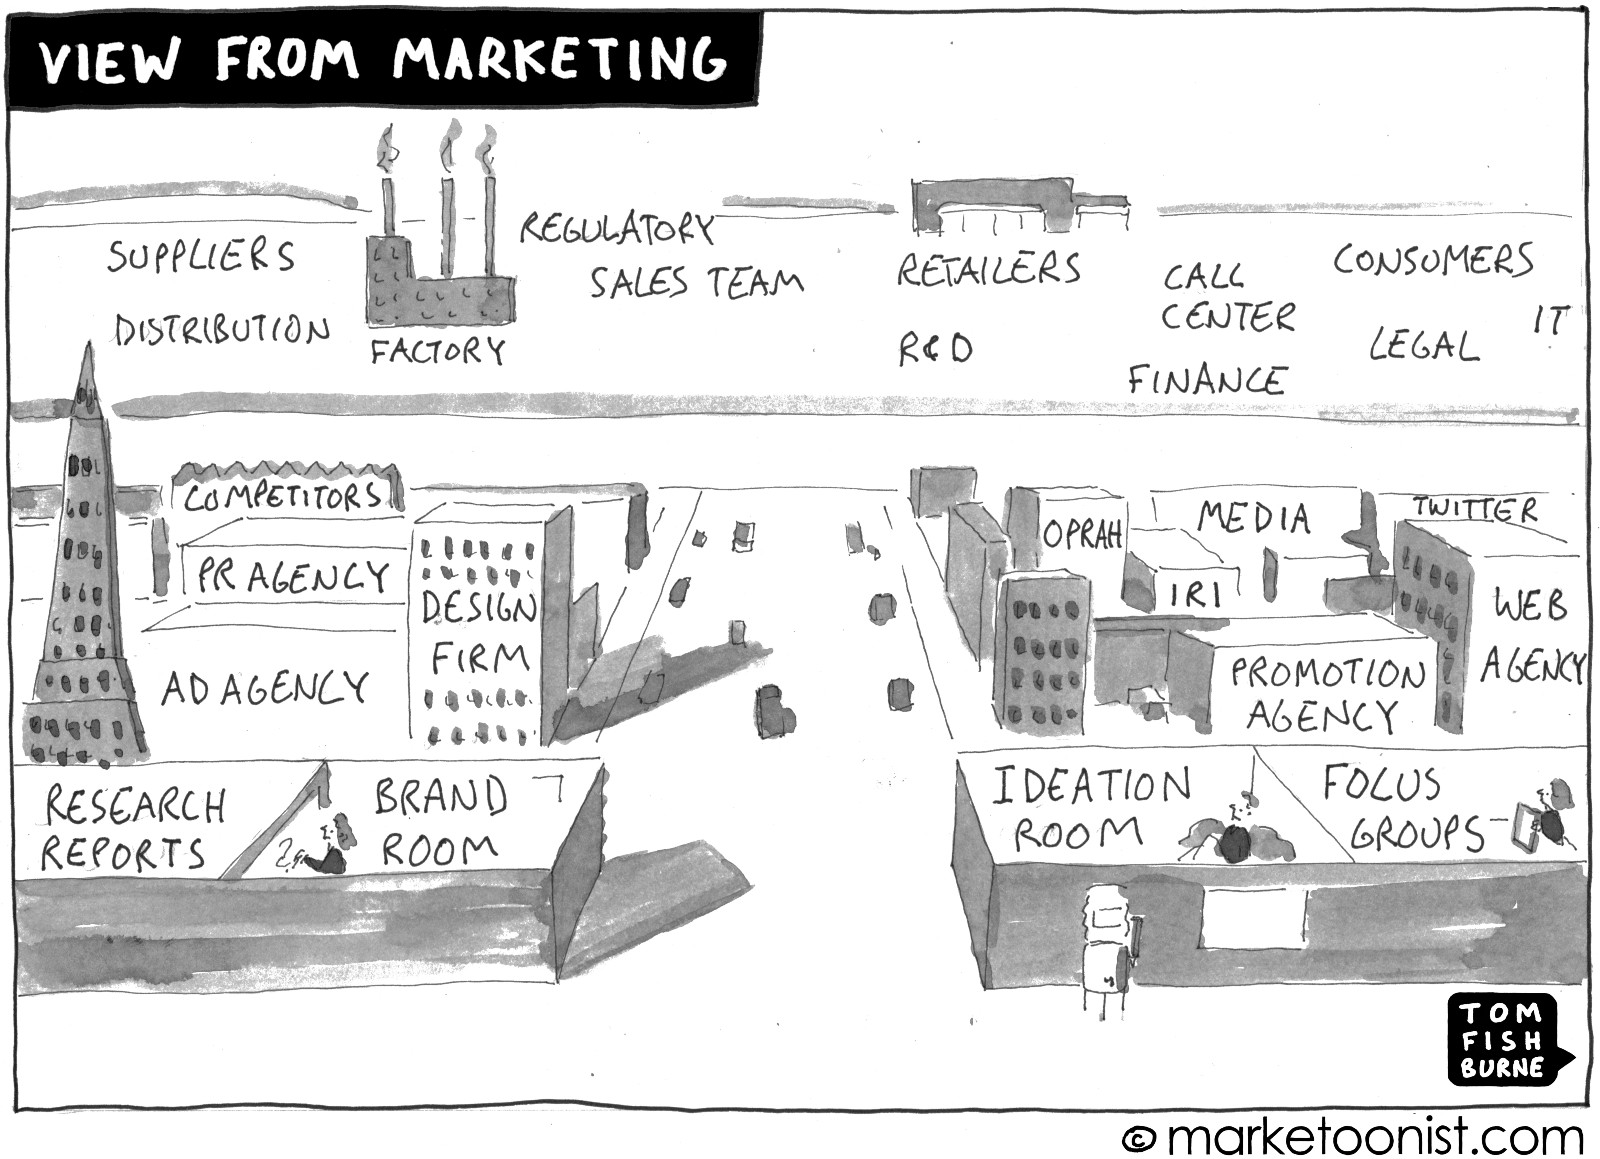 Marketing is specializing itself into irrelevance